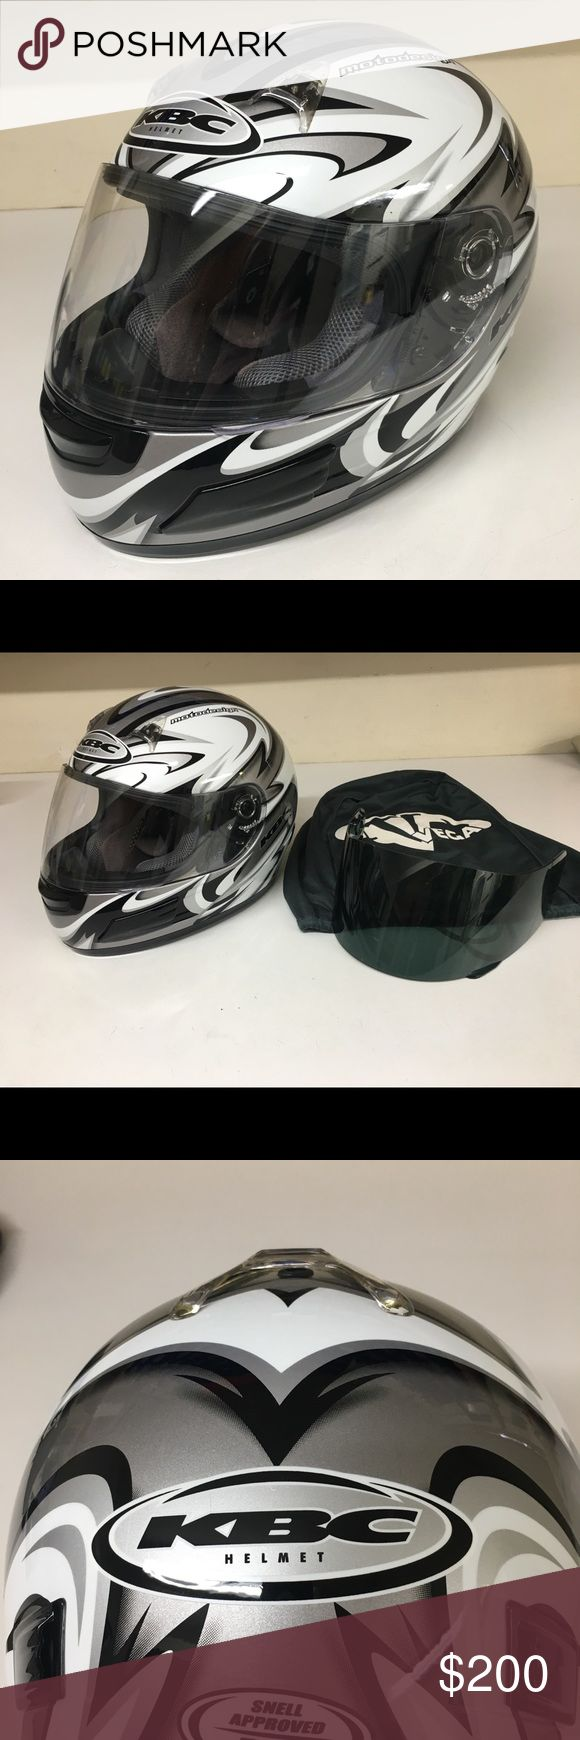 KBC TK-8 Excalibur Helmet w/ extra tinted visor Like Brand New! Worn twice. Comes with clear and tinted visor and protector bag. Size Small 55-56cm KBC Helmet Other